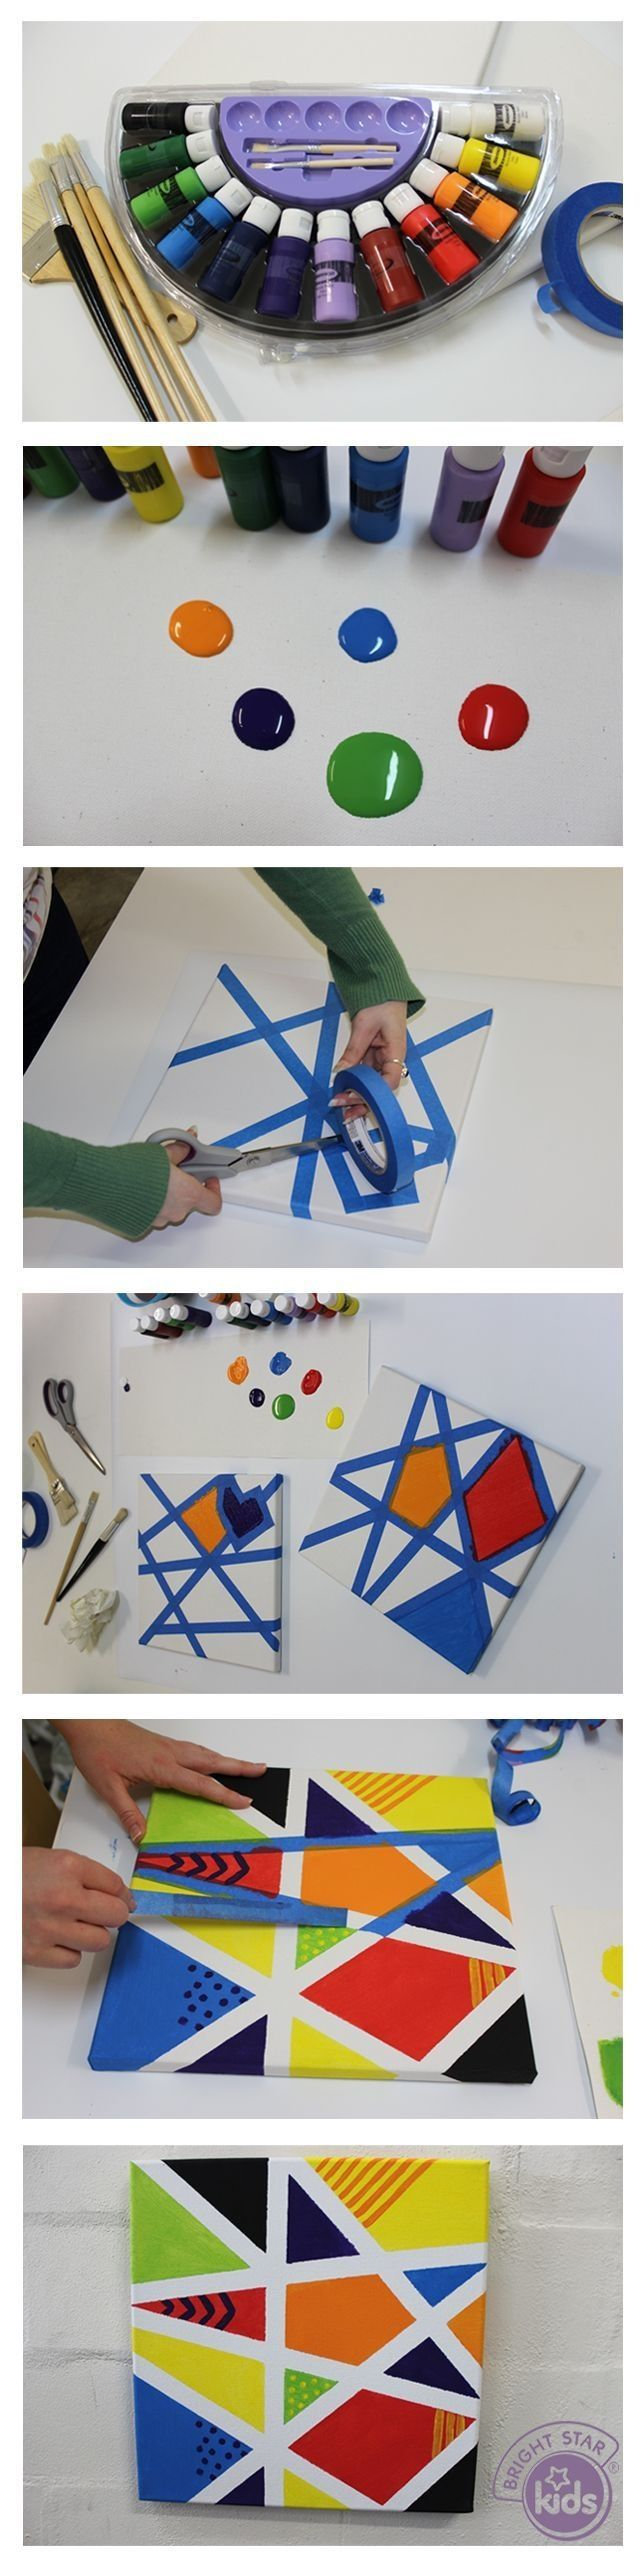 Paintings with kids - children's ministry crafts